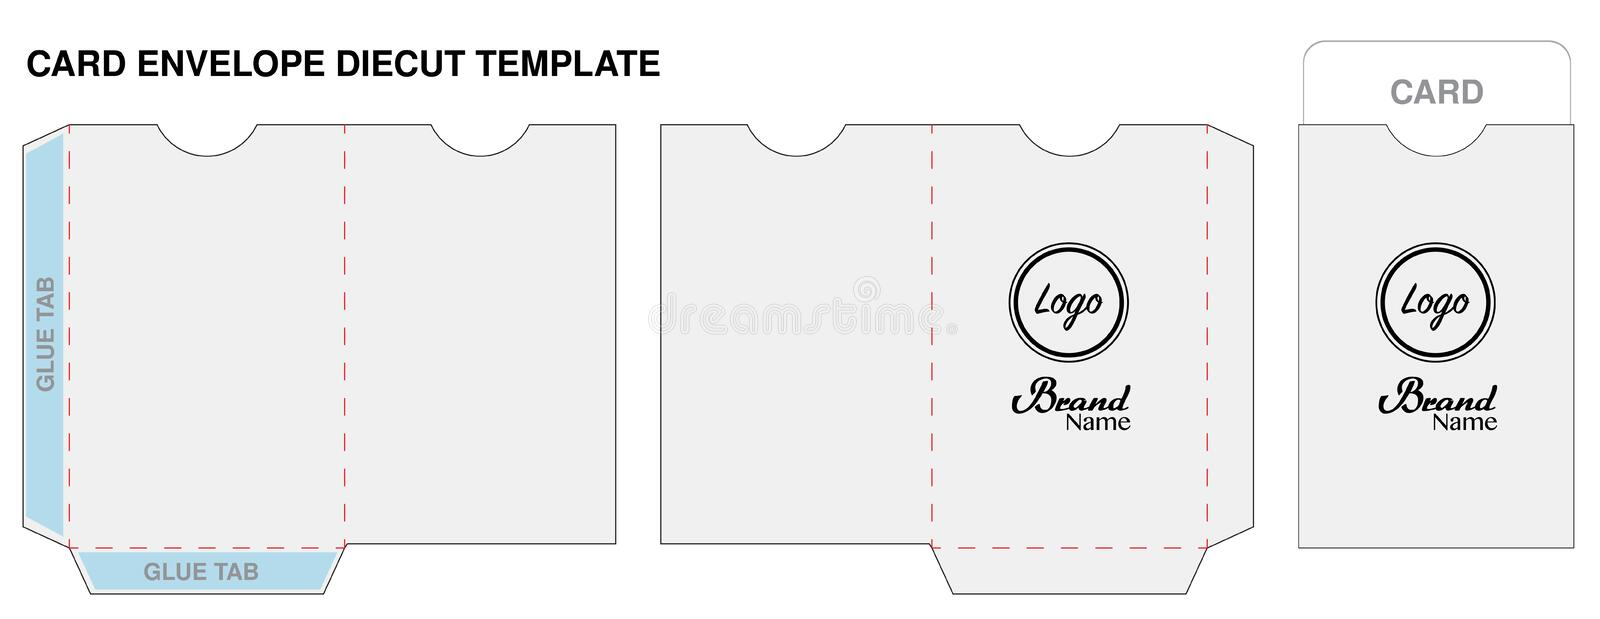 Key card envelope die cut template mockup vector stock vector download key card envelope die cut template mockup vector stock vector illustration of card ccuart Gallery